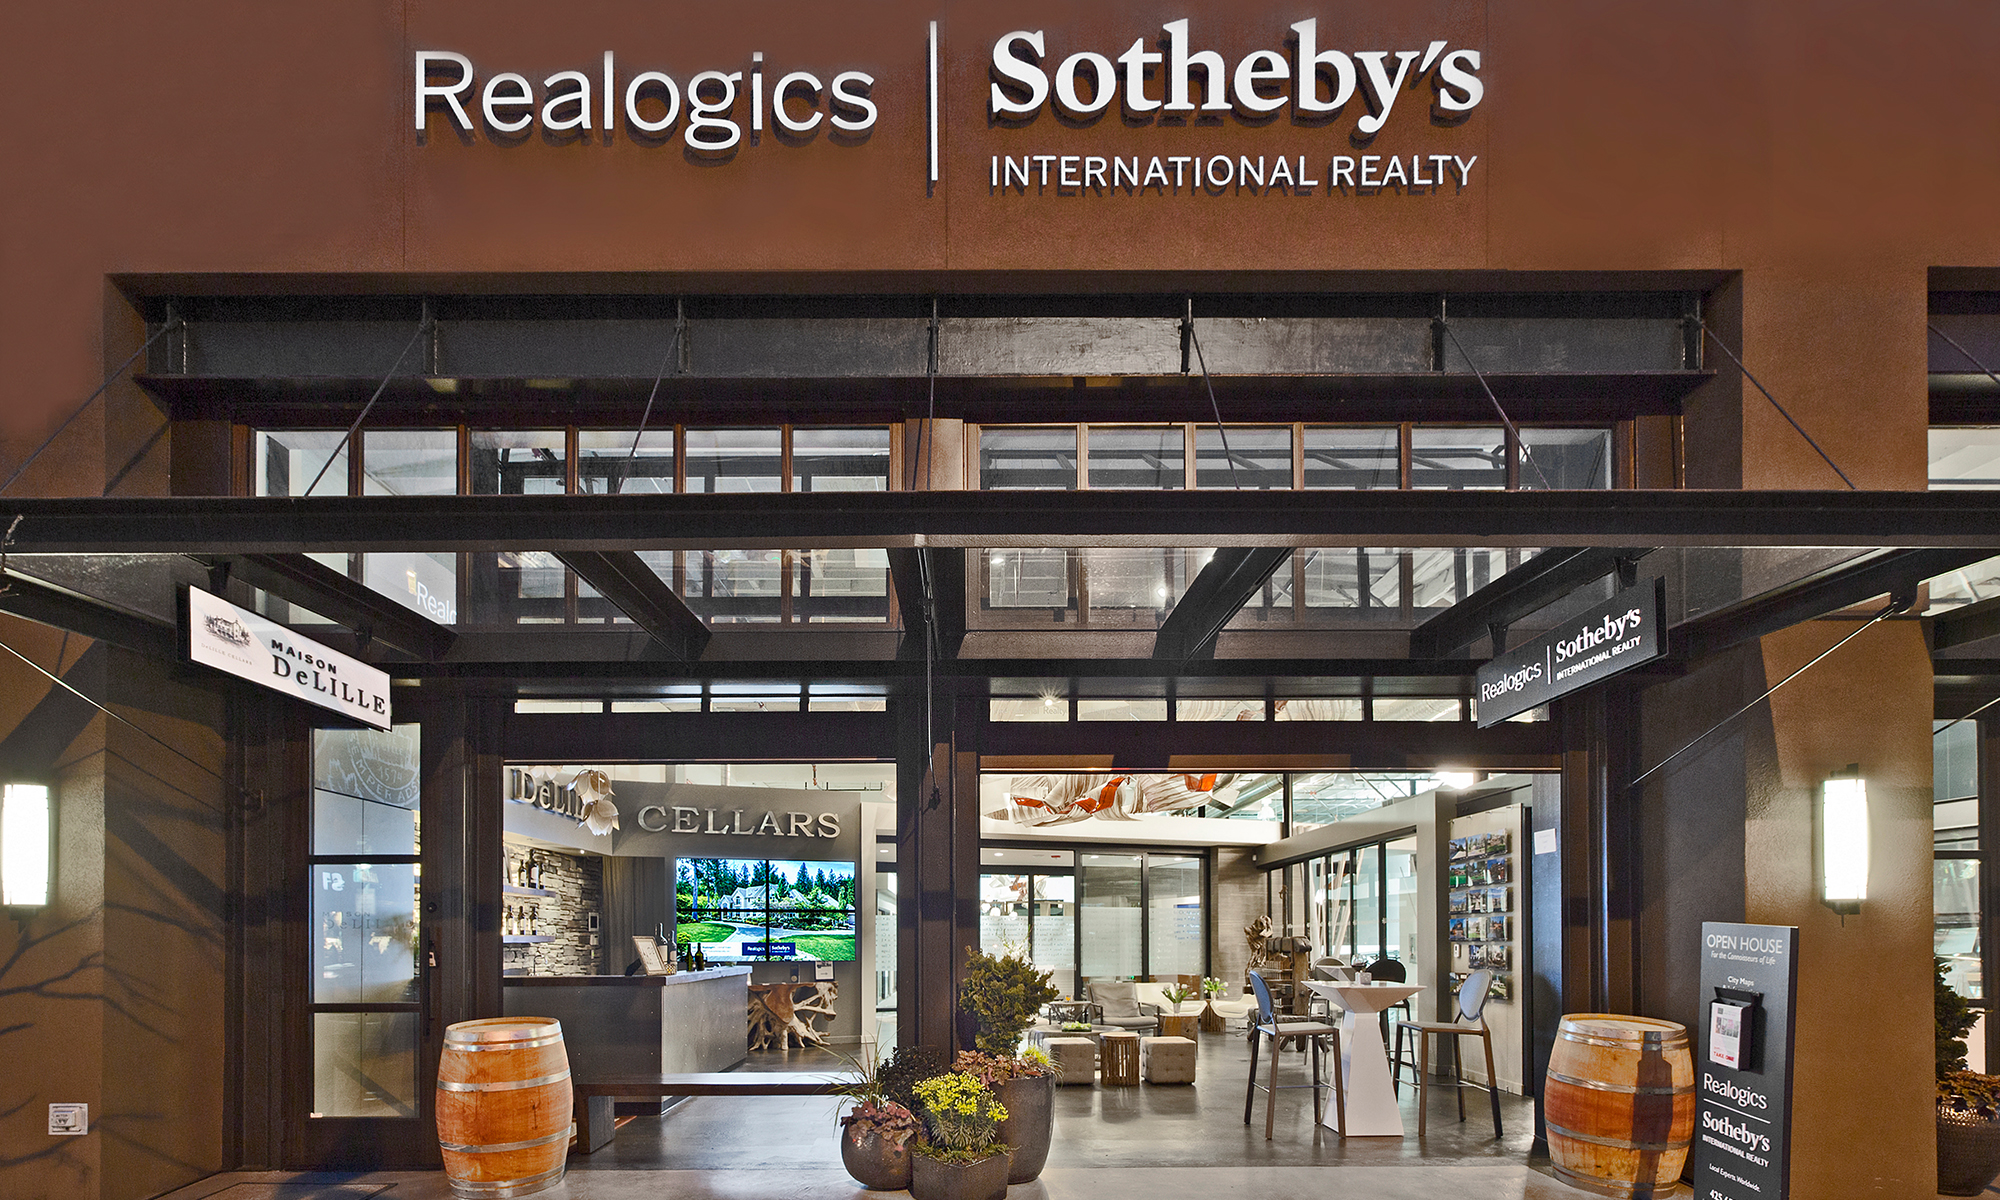 Office Realogics Sotheby's International Realty Photo